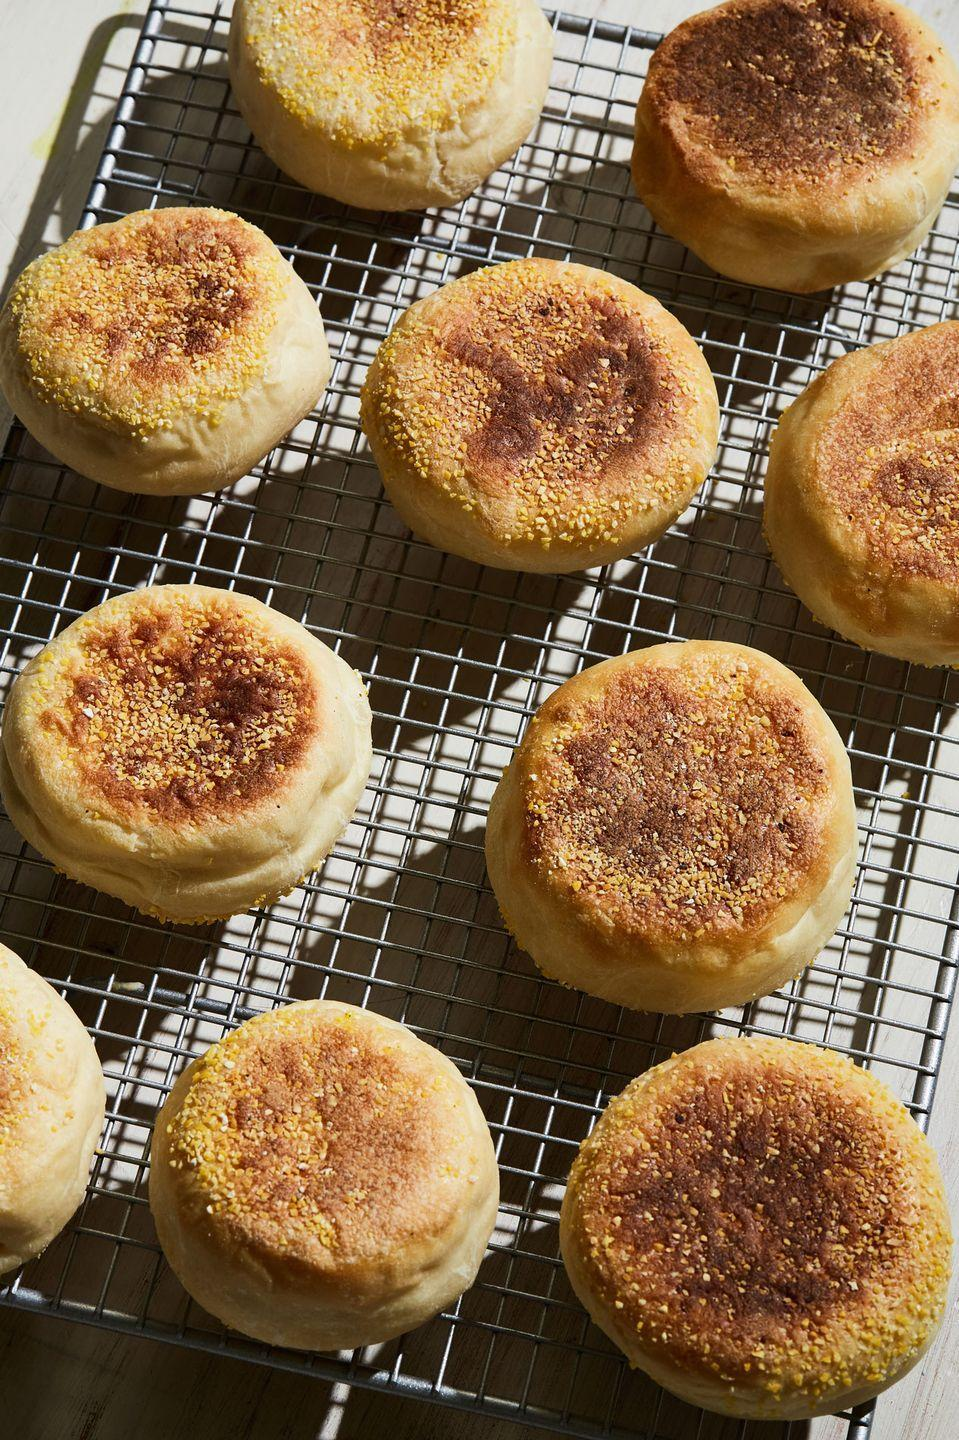 """<p>These are truly picture perfect.</p><p>Get the recipe from <a href=""""https://www.delish.com/cooking/recipe-ideas/a30983749/english-muffin-recipe/"""" rel=""""nofollow noopener"""" target=""""_blank"""" data-ylk=""""slk:Delish."""" class=""""link rapid-noclick-resp"""">Delish.</a></p>"""